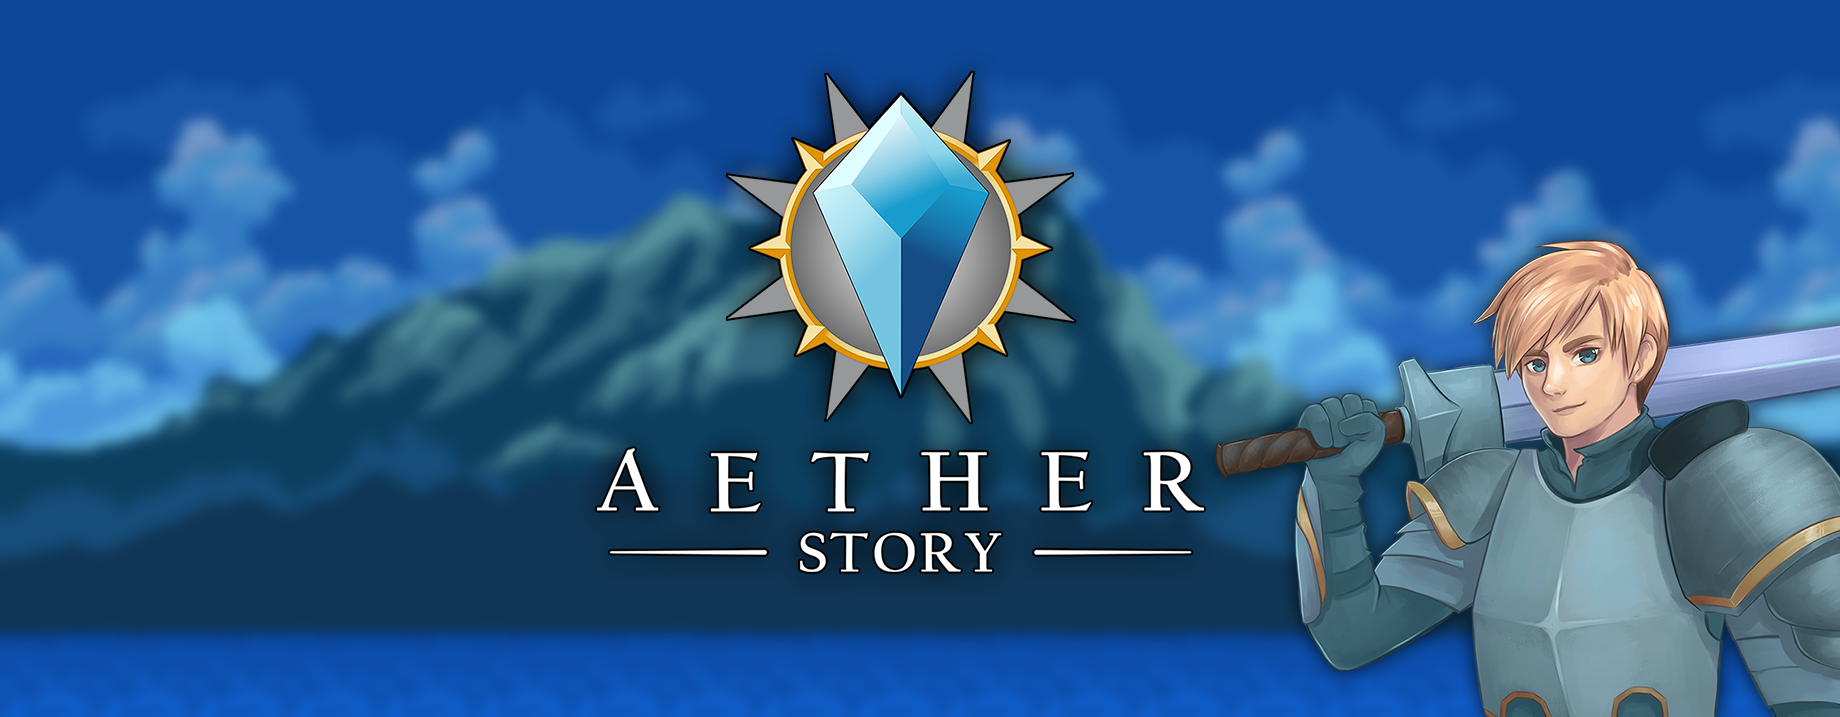 Aether Story